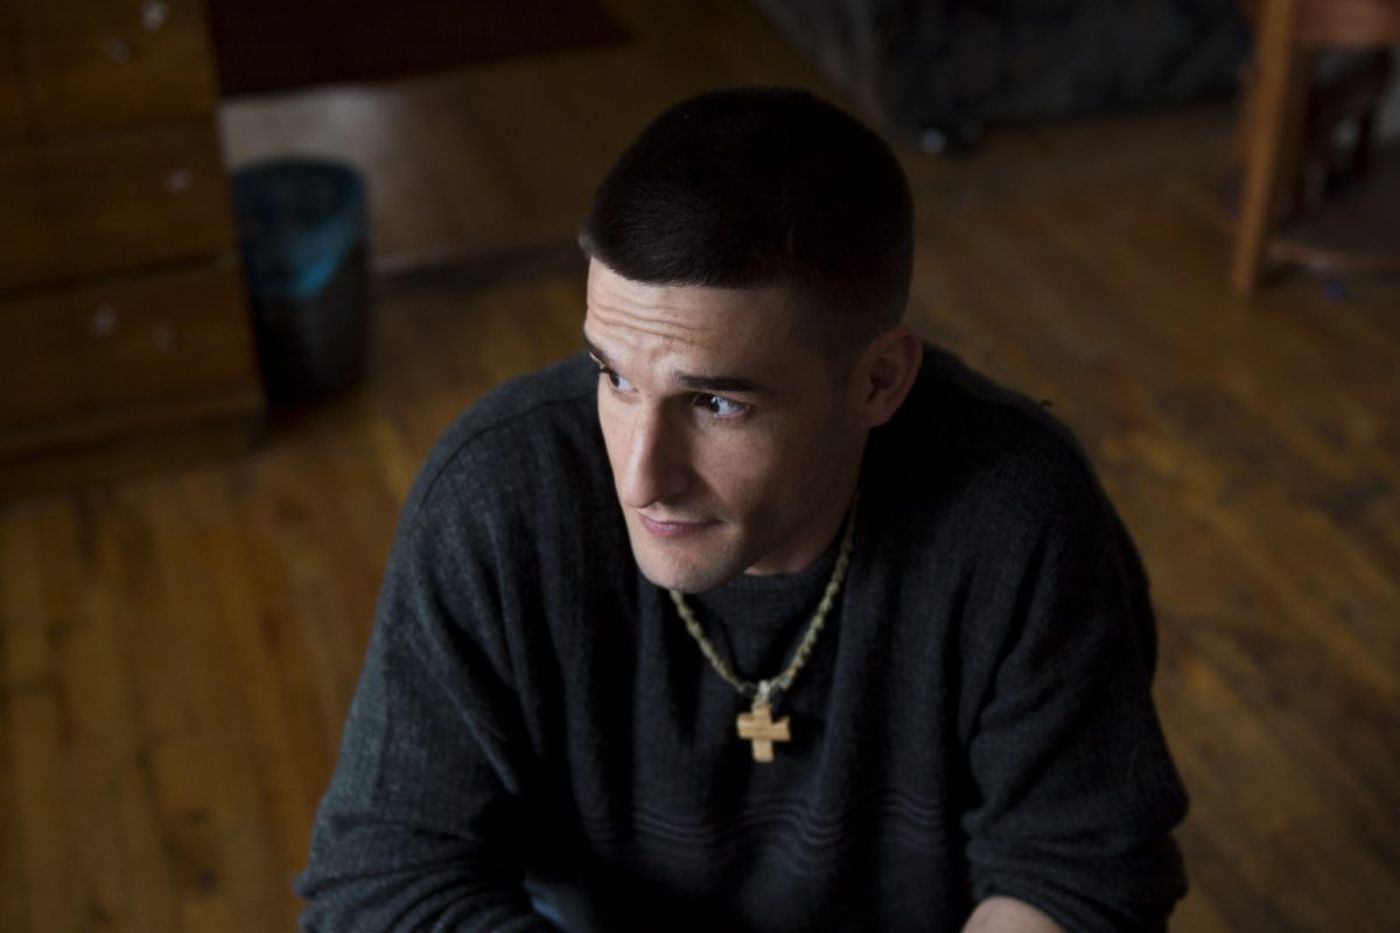 From Harvard to heroin, a recovery story